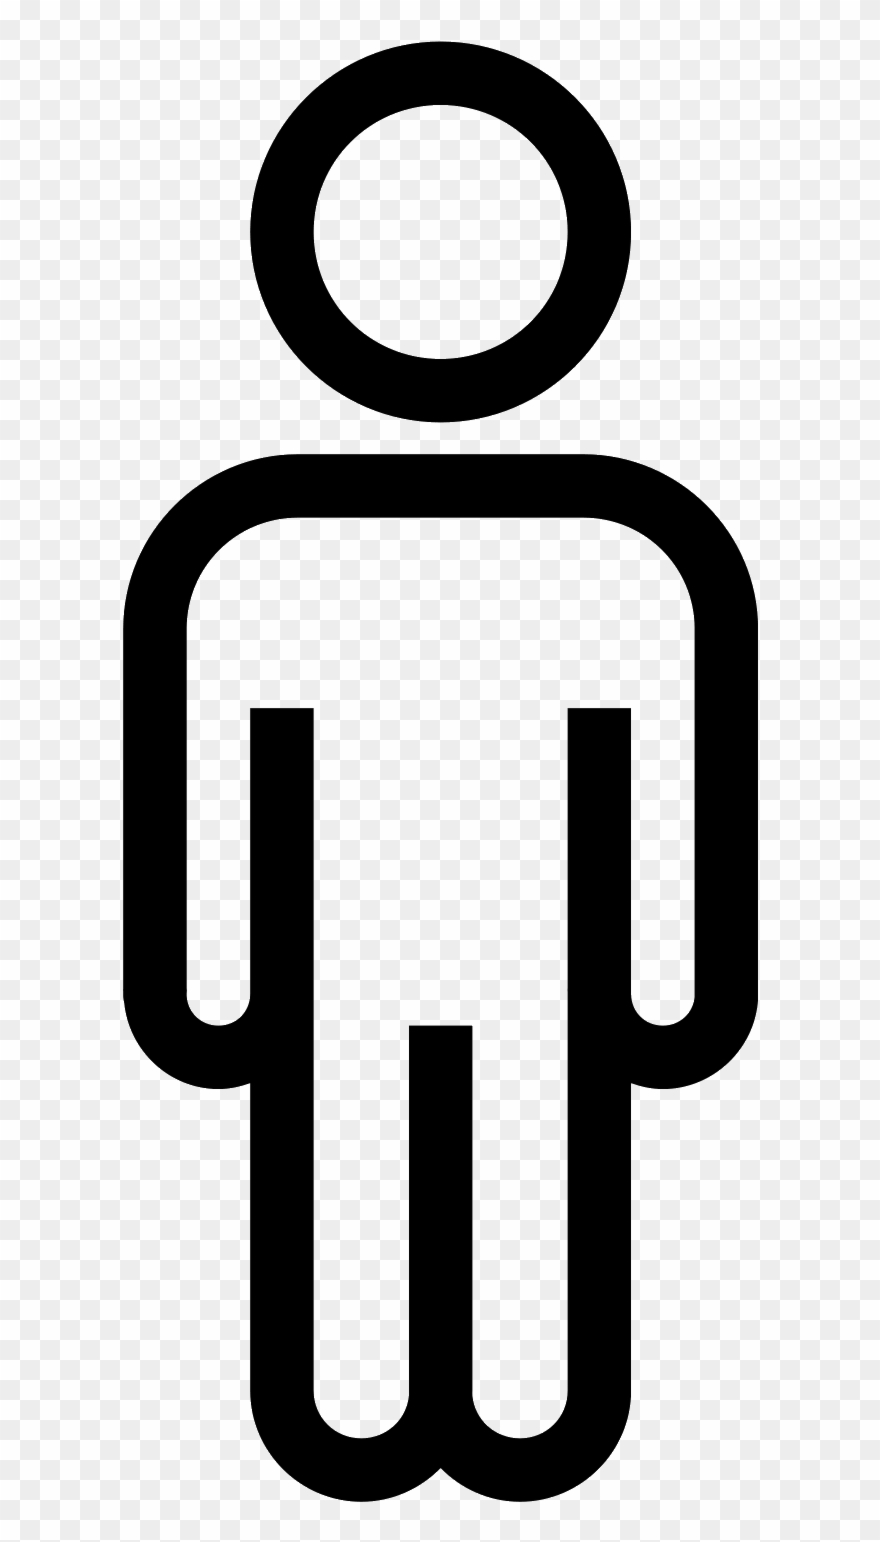 Clipart person png clip royalty free stock Person Outline Png - Man Icon Clipart (#586556) - PinClipart clip royalty free stock